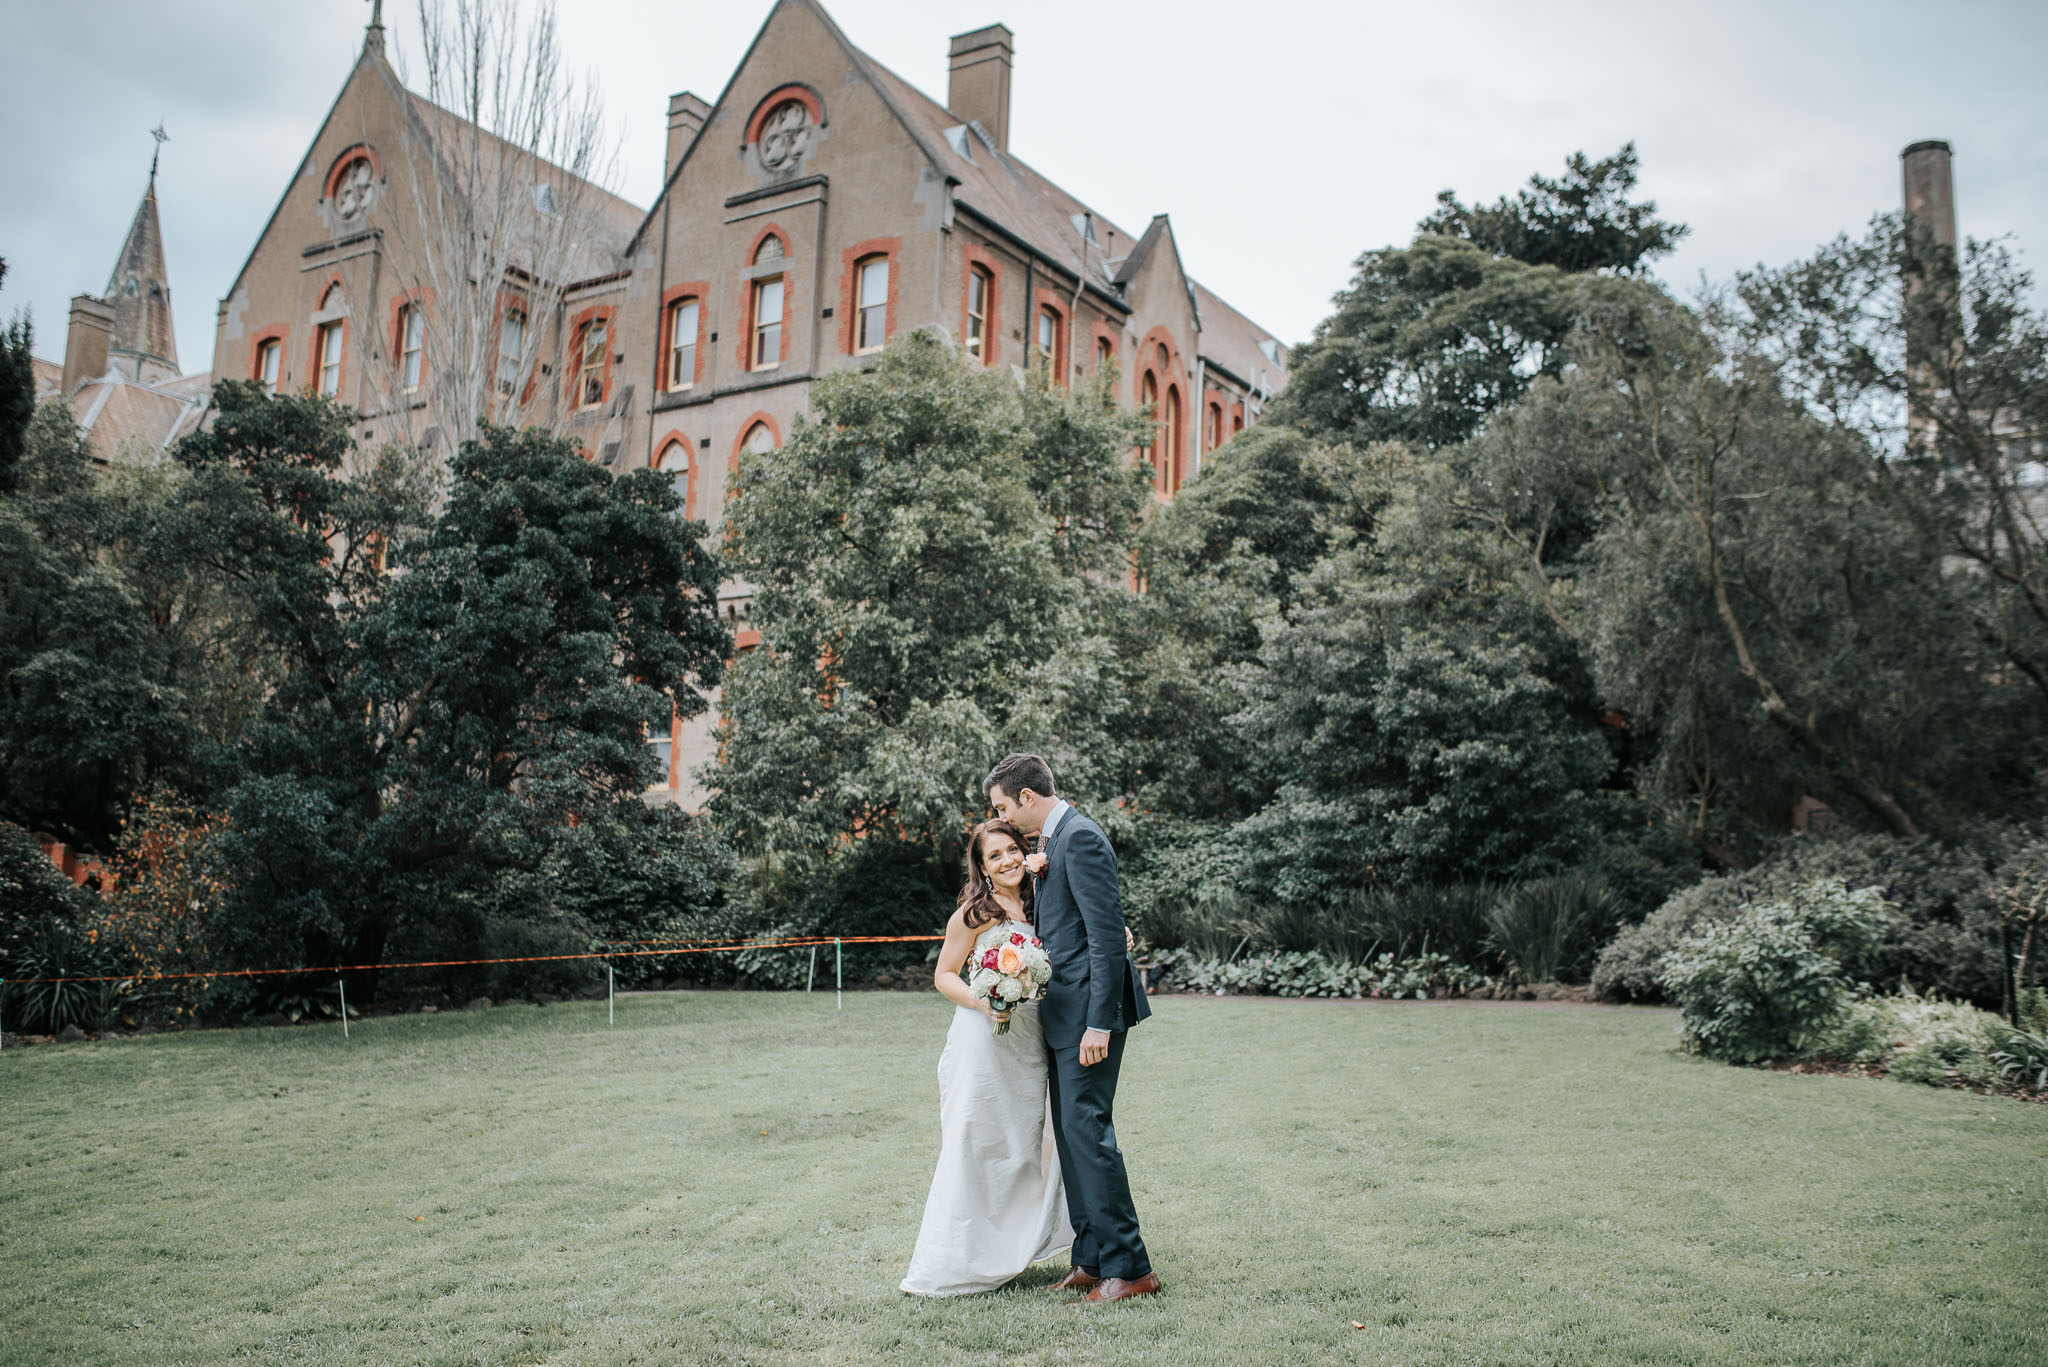 abbotsford convent melbourne wedding photographer